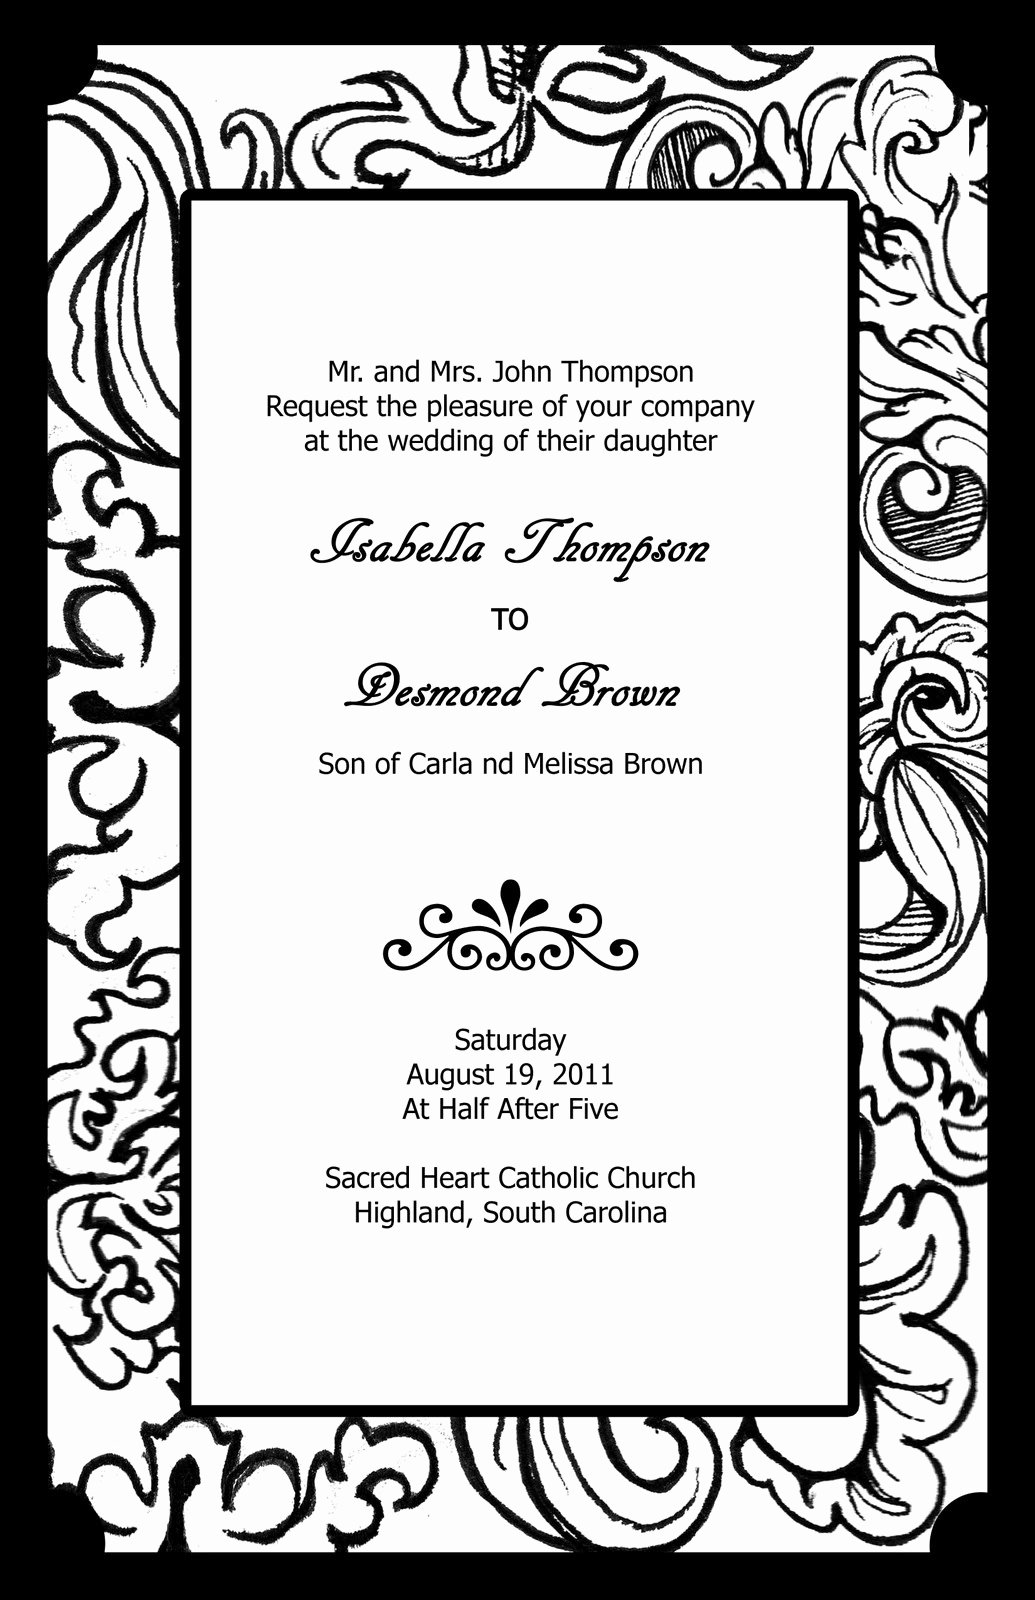 Gold Wedding Invitations Black and White Invi with Black White and Red Wedding Invitation Cards